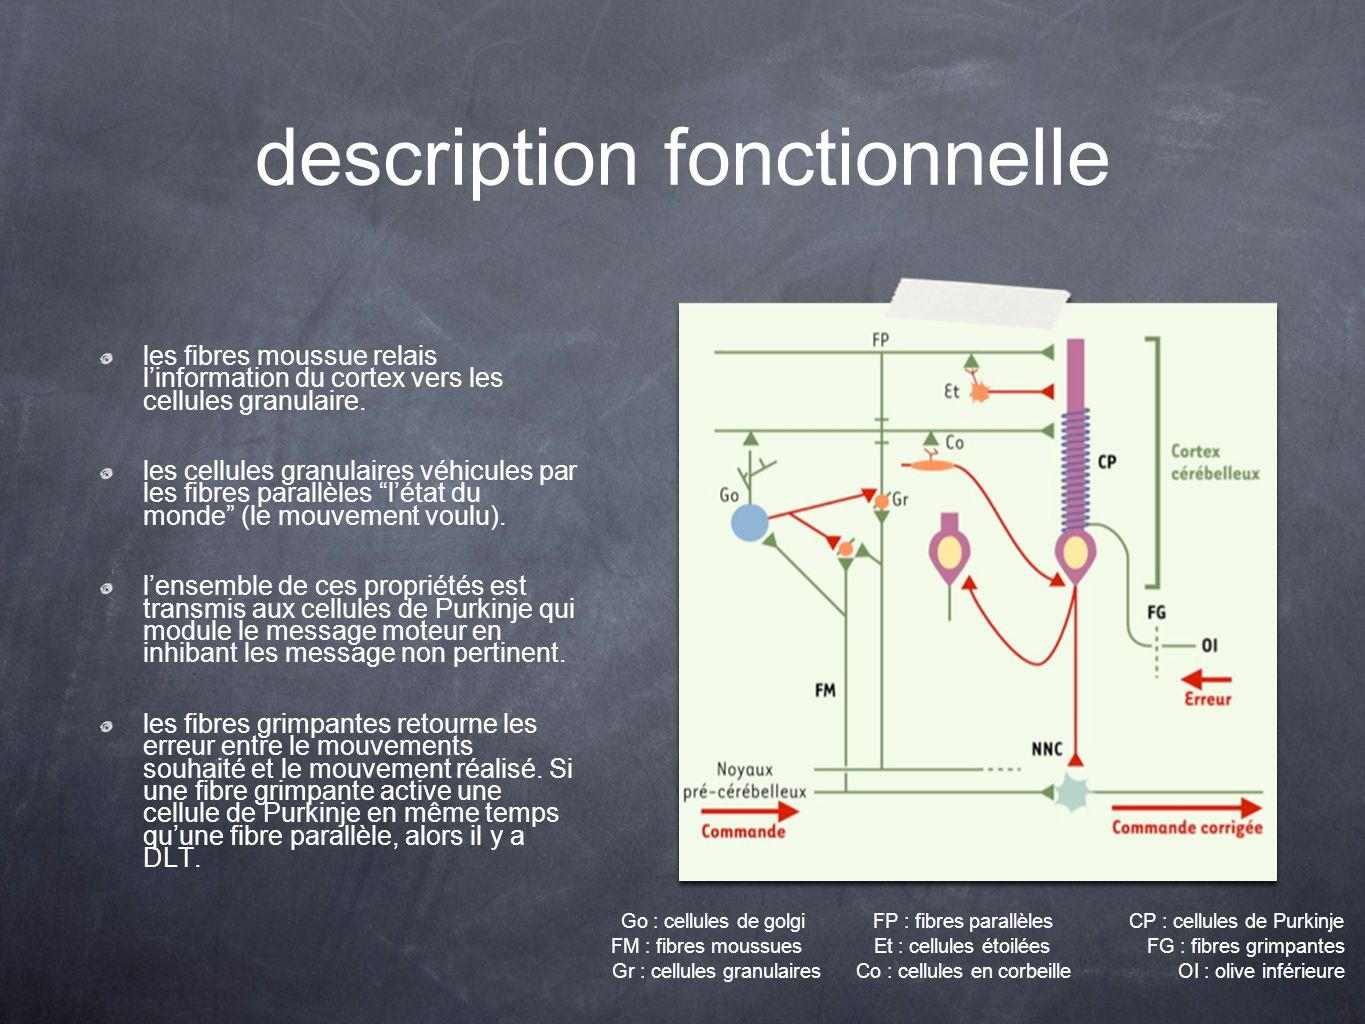 description fonctionnelle